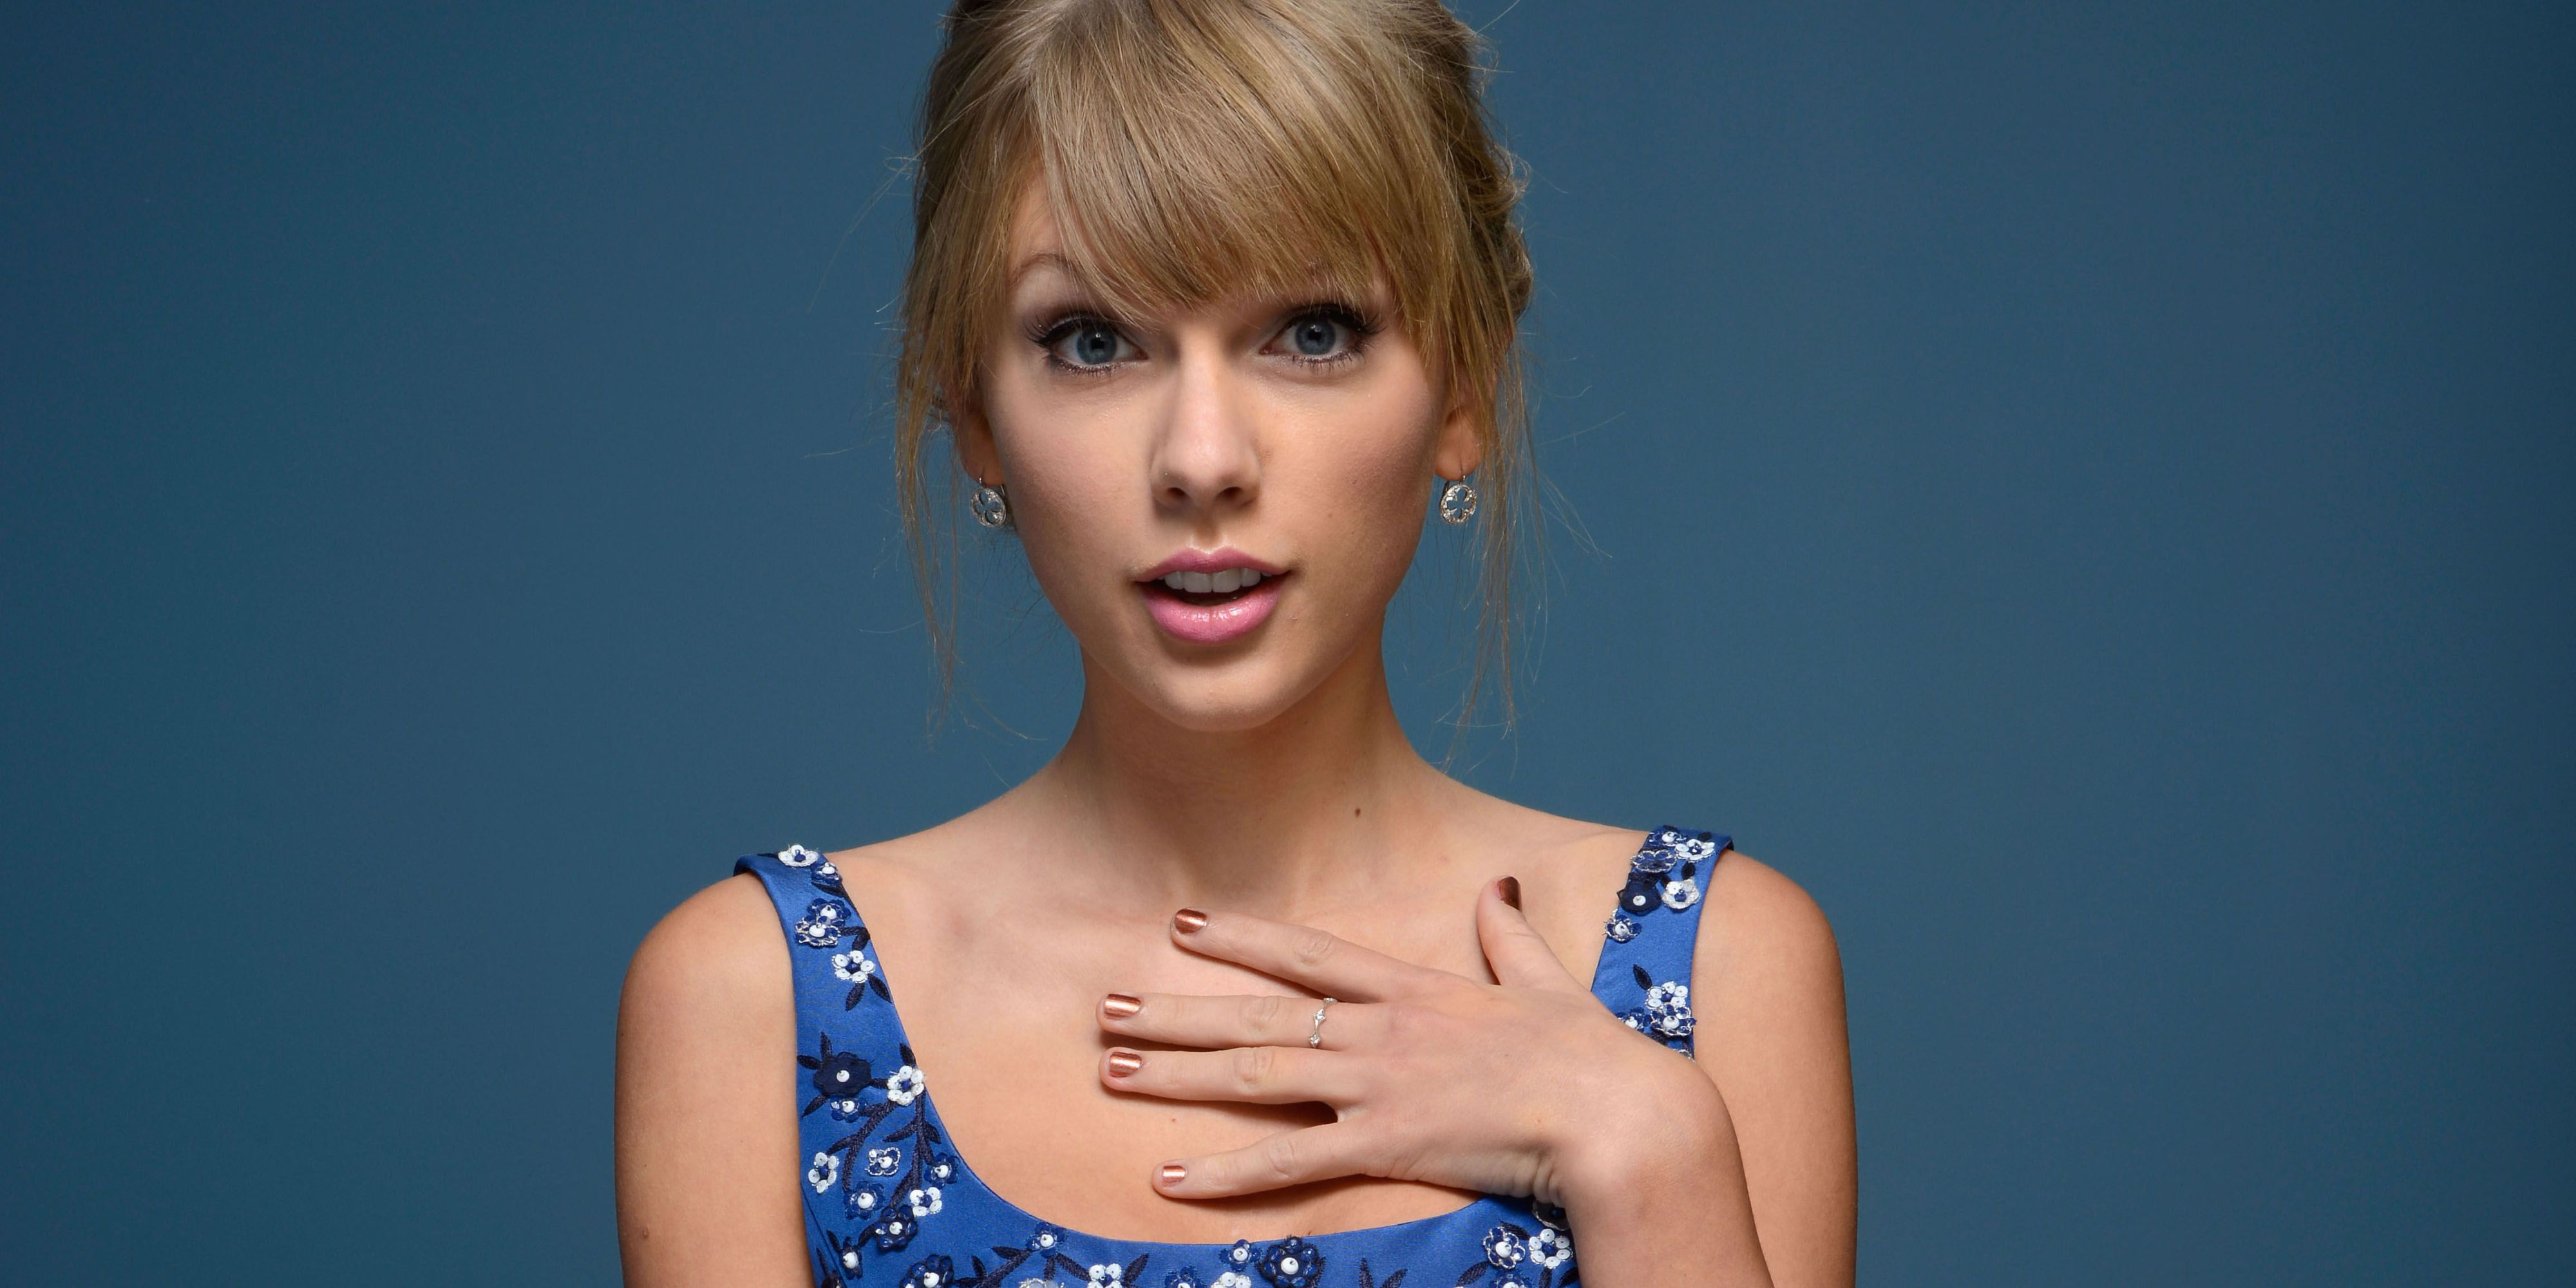 Naked pics of taylor swift pic 2